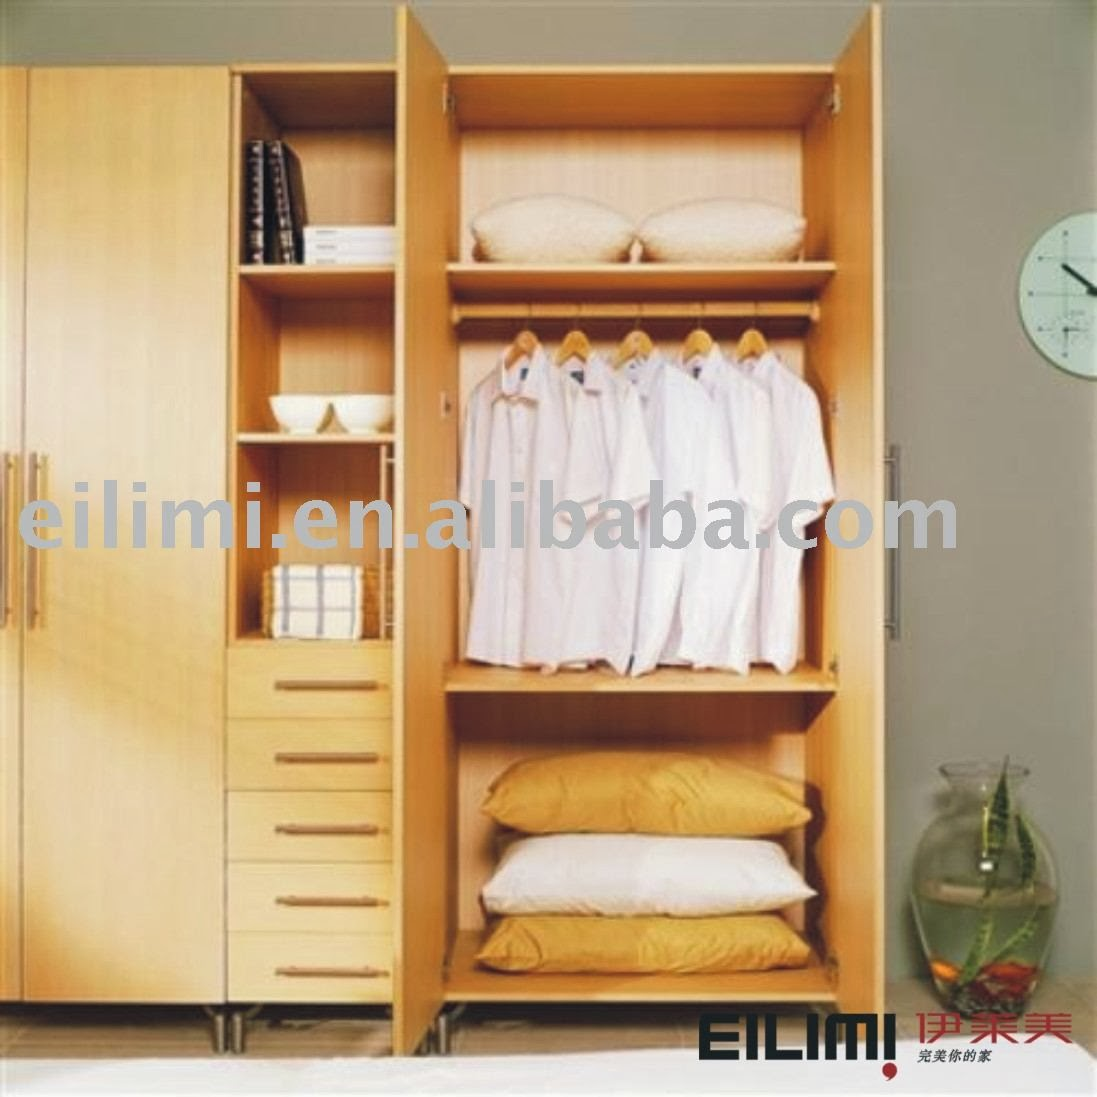 Bedroom cabinet design for Bedroom cupboard designs images